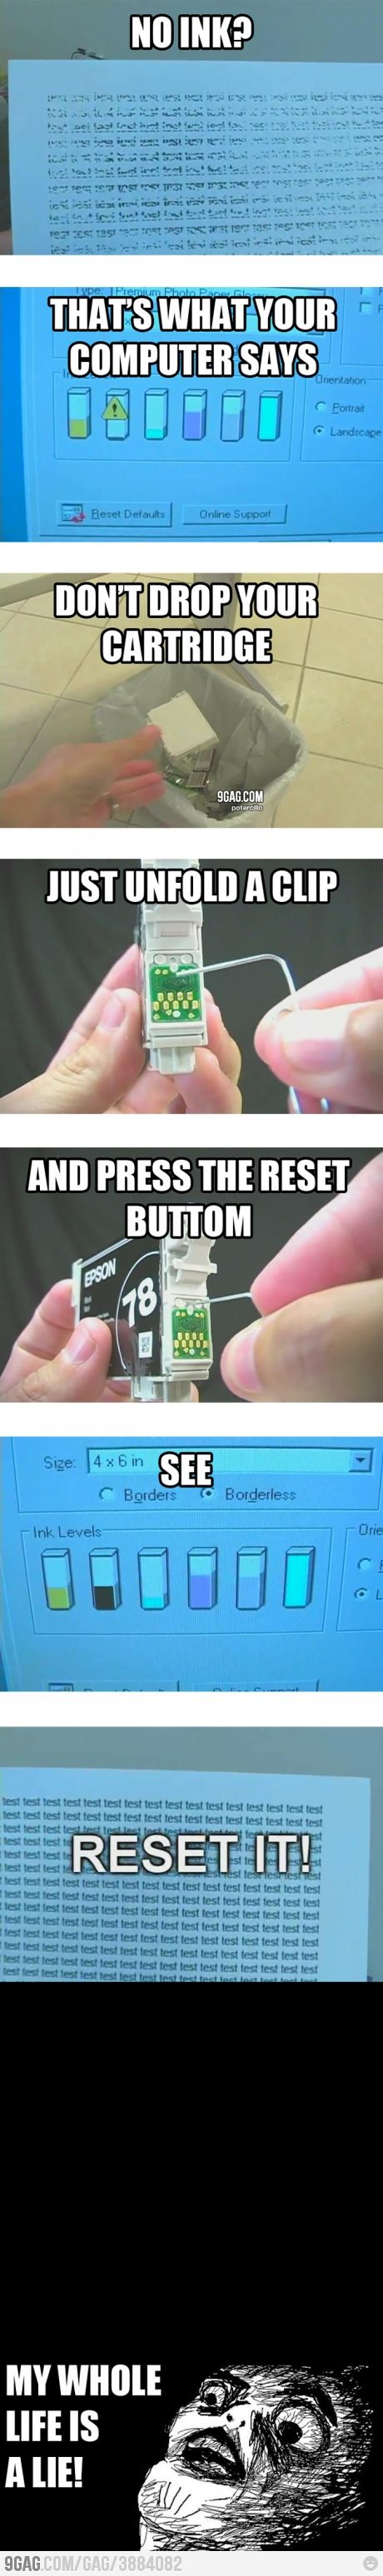 I have to try this: Reset Ink Cartridges, Ideas, It Work, Random, Lifehacks, Interesting, Life Hacks, Diy, Printer Ink